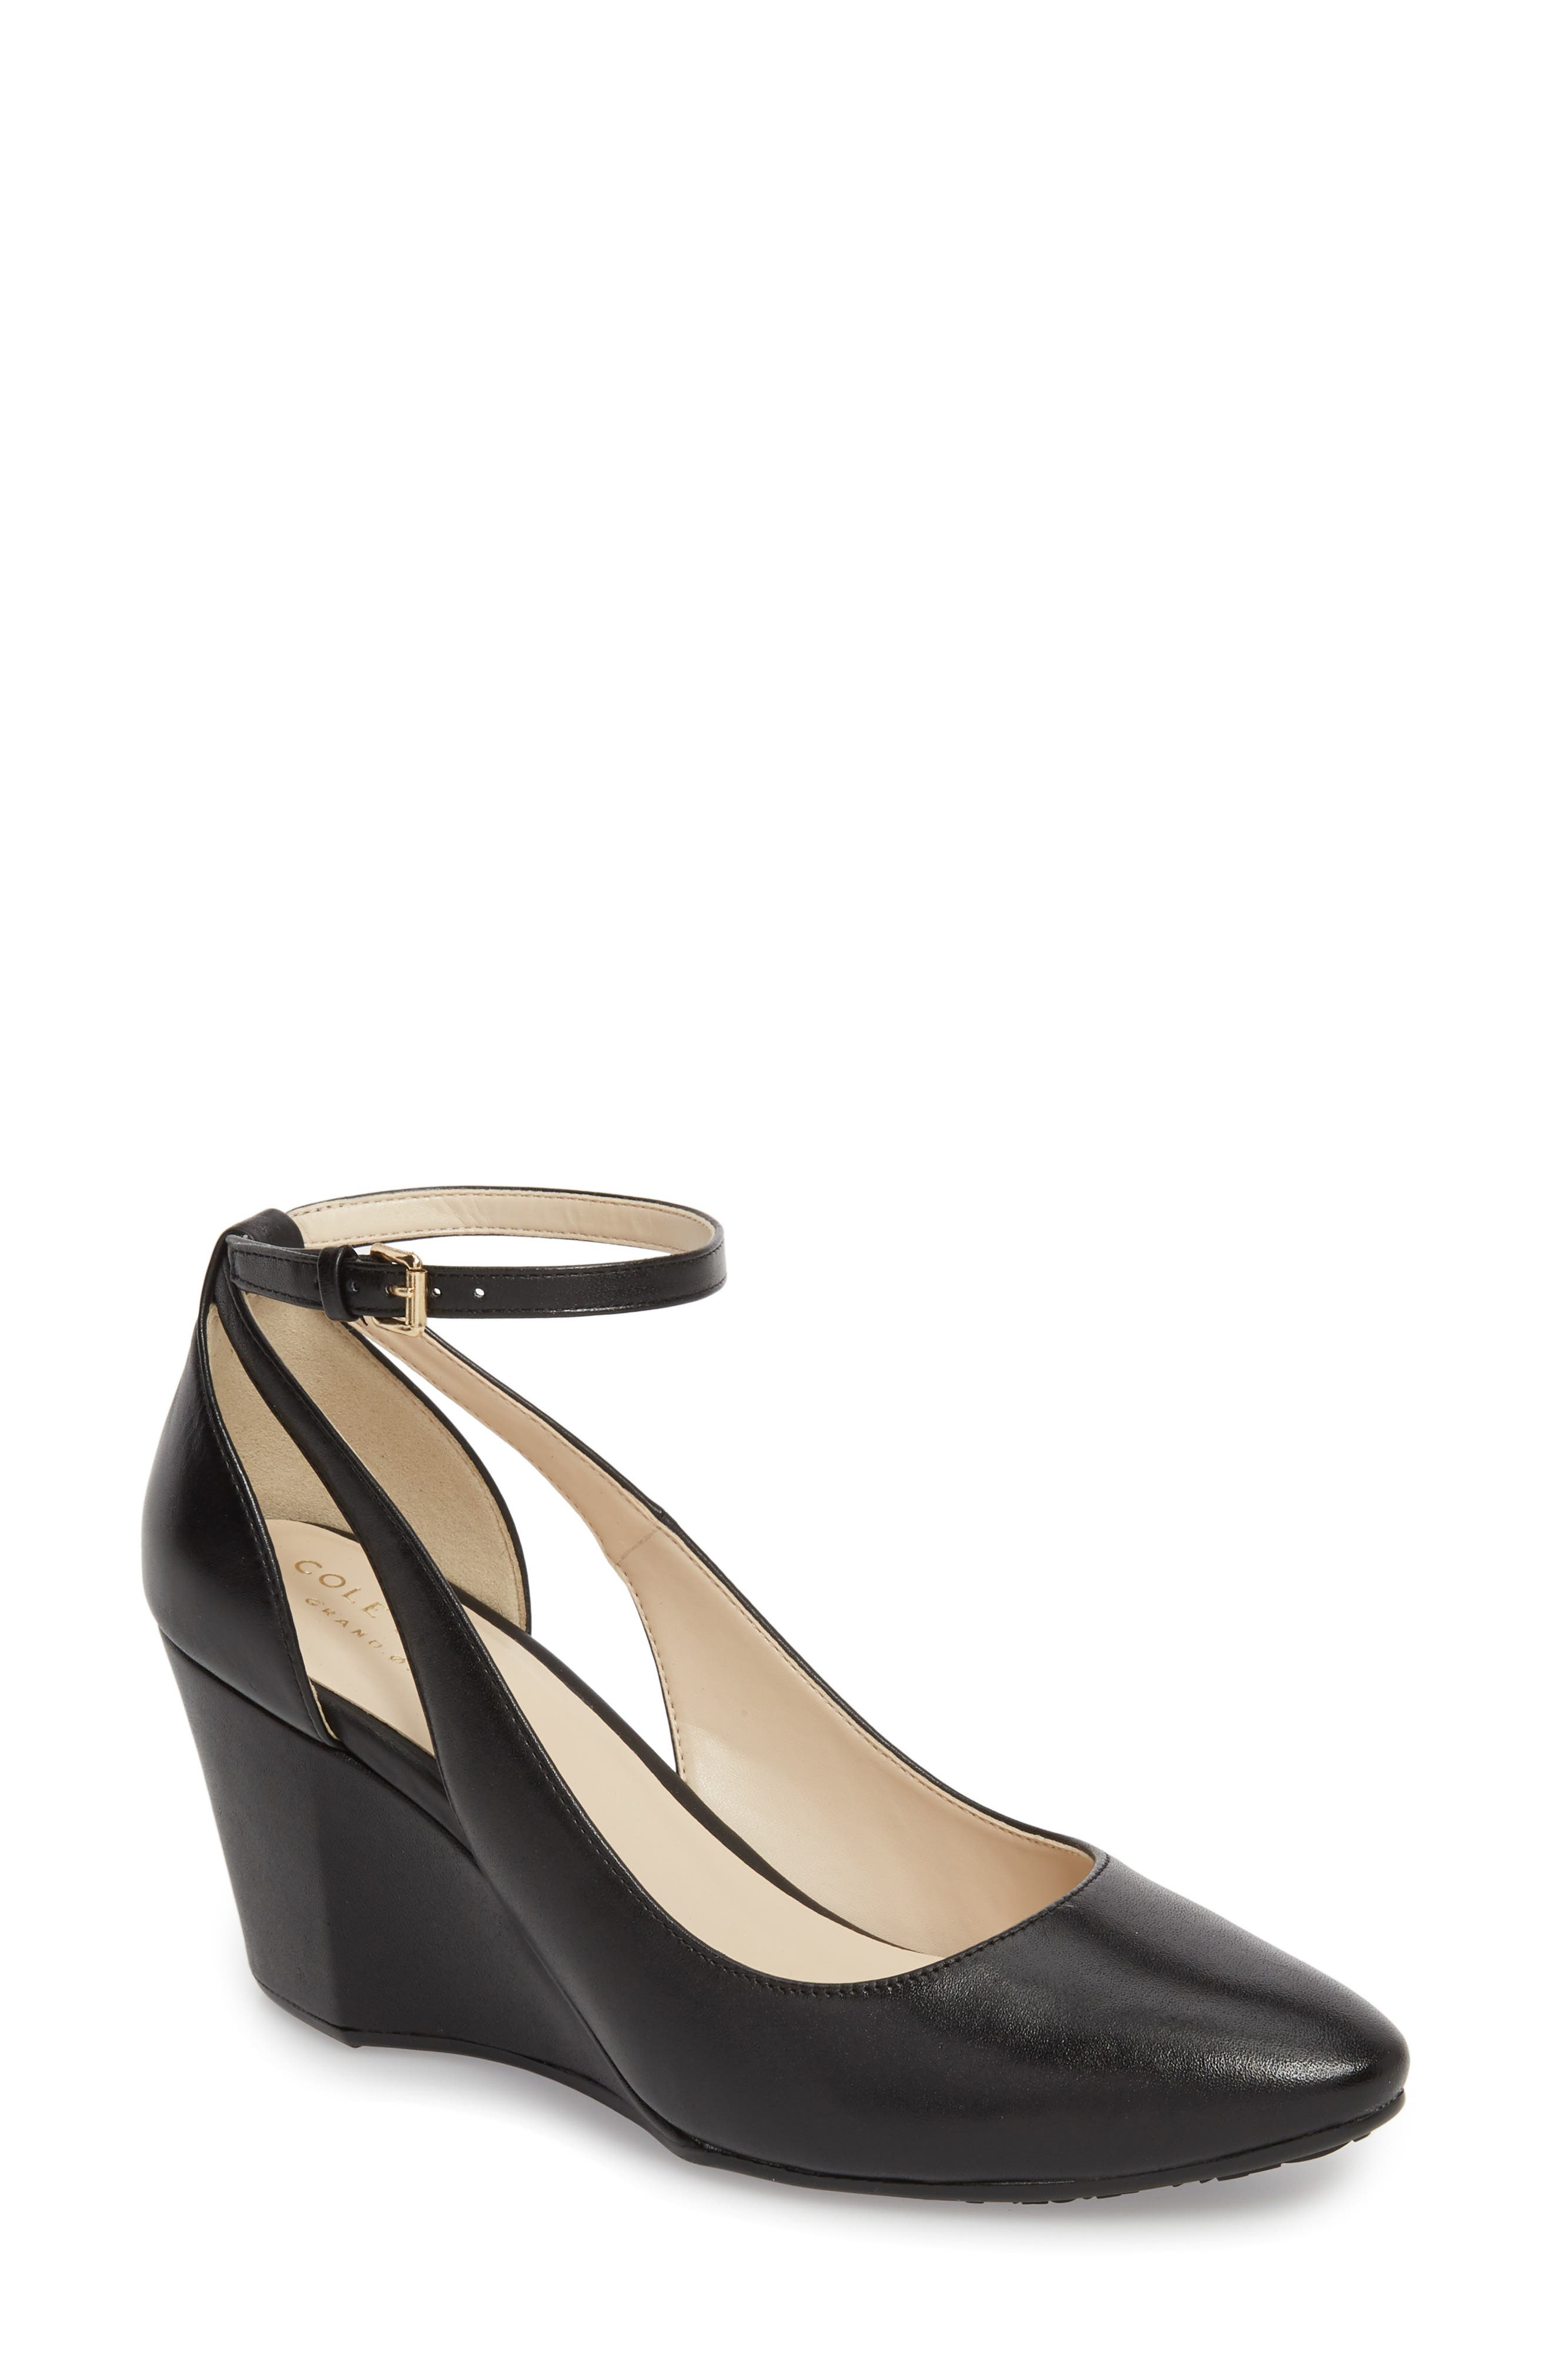 Lacey Cutout Wedge Pump in Black Leather